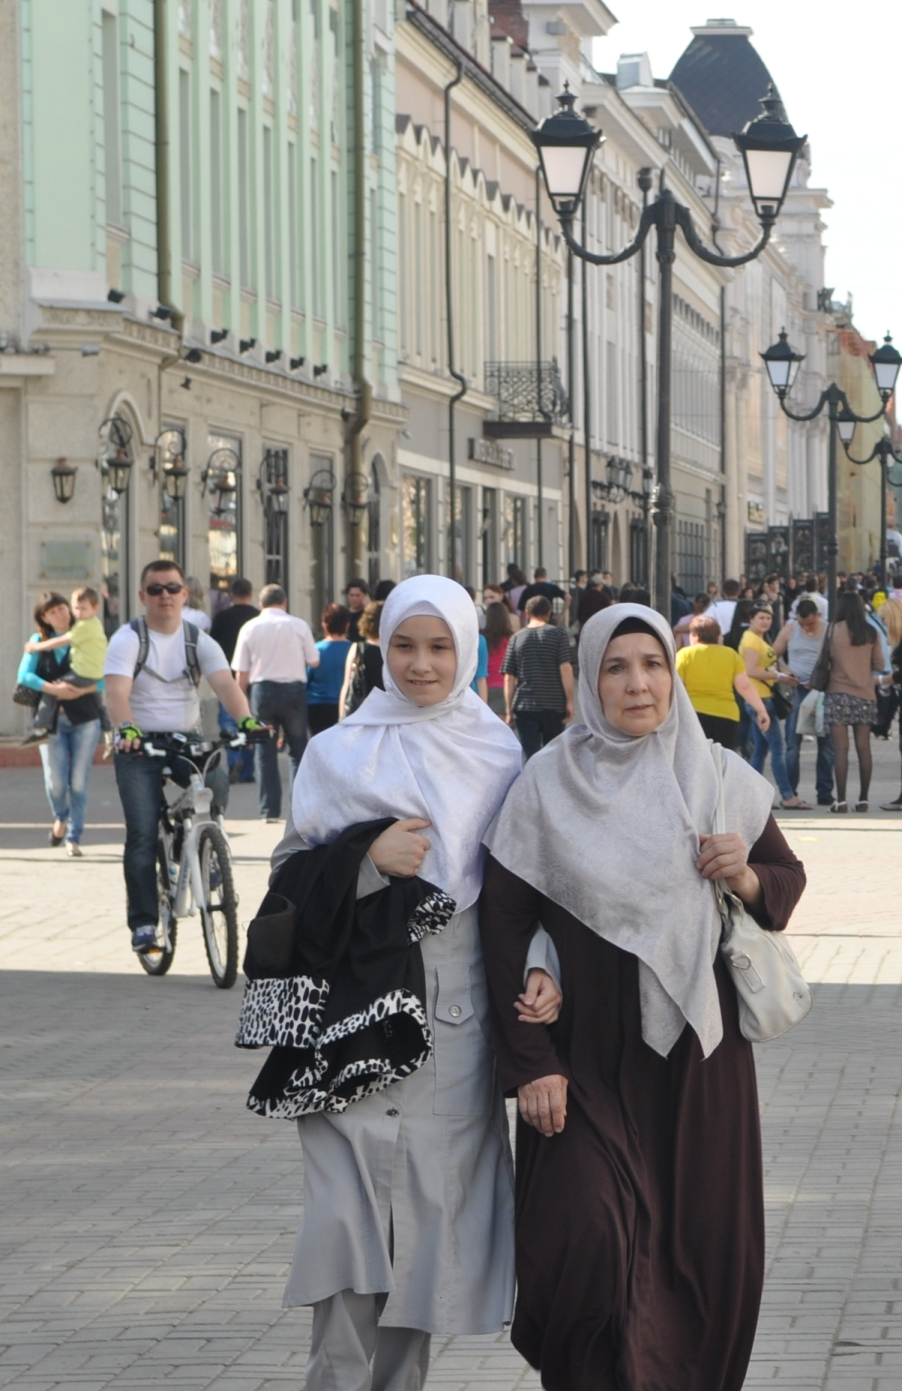 kazan muslim personals Find people looking for muslim marriage in russia on lovehabibi browse muslim matrimonial ads in russia and find the right person for you.